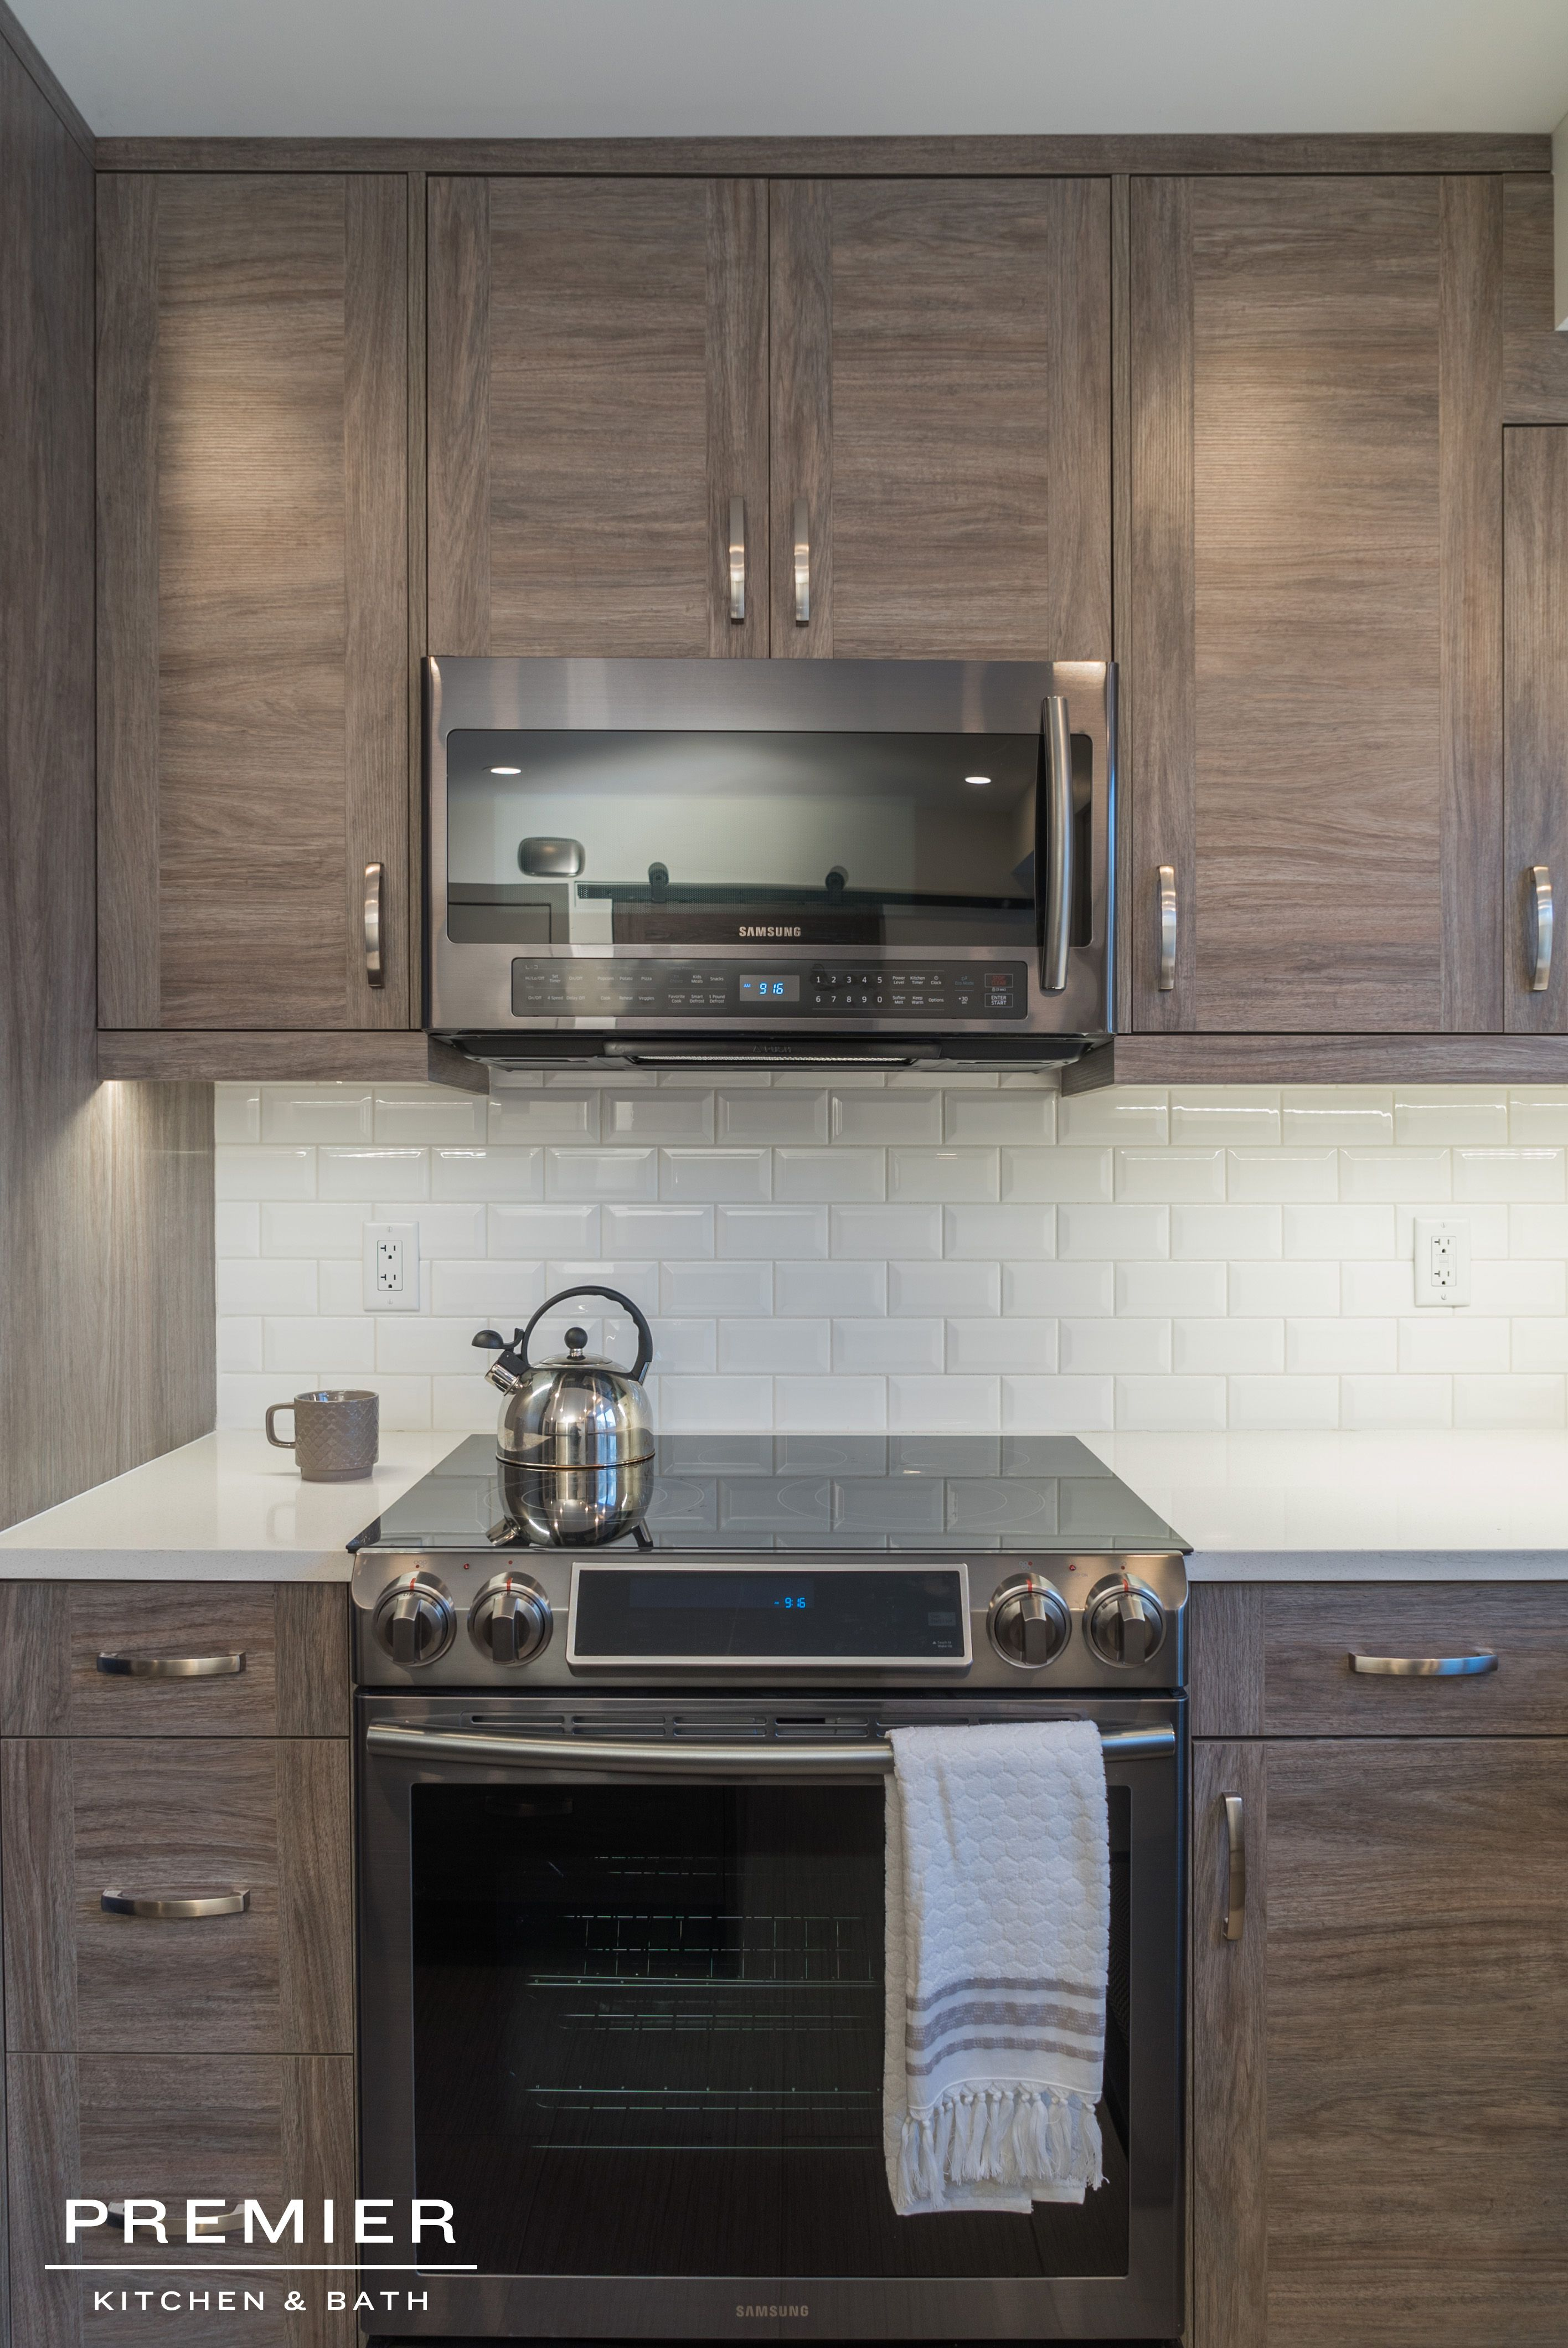 Premier Companies Winnipeg Mb 1 204 272 7246 Cheap Kitchen Cabinets Kitchen Renovation Trends Kitchen Cabinets For Sale